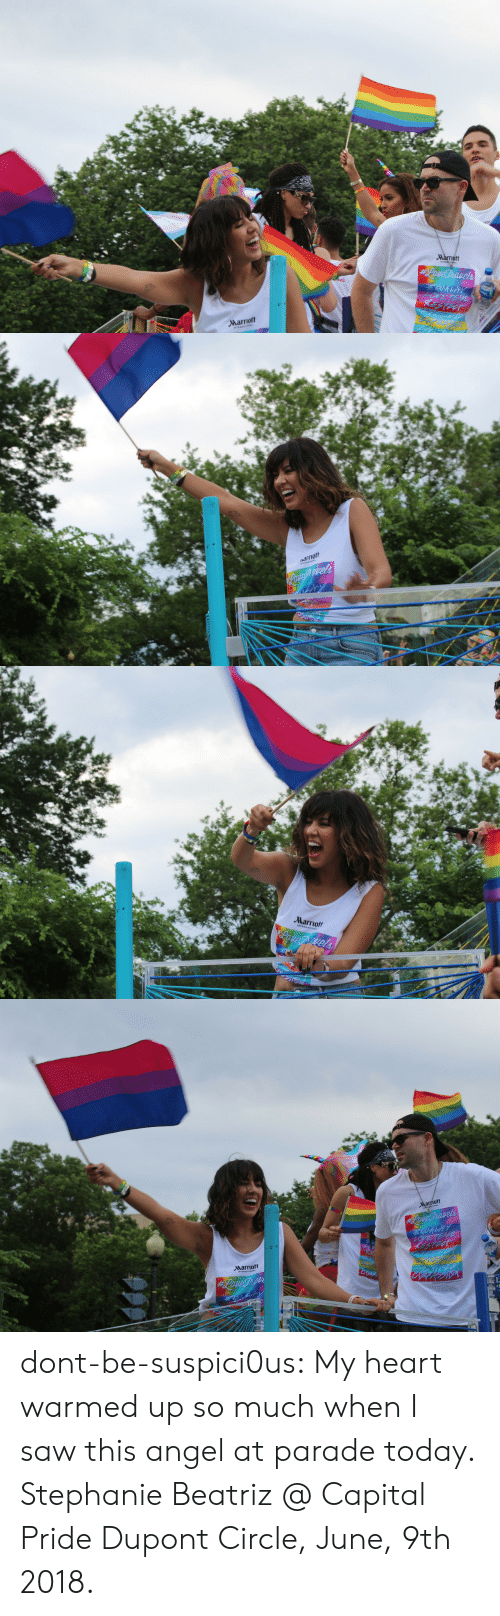 Beatriz: Marriott   Marriott   ott  Narriott dont-be-suspici0us:  My heart warmed up so much when I saw this angel at parade today.  Stephanie Beatriz @ Capital Pride Dupont Circle, June, 9th 2018.